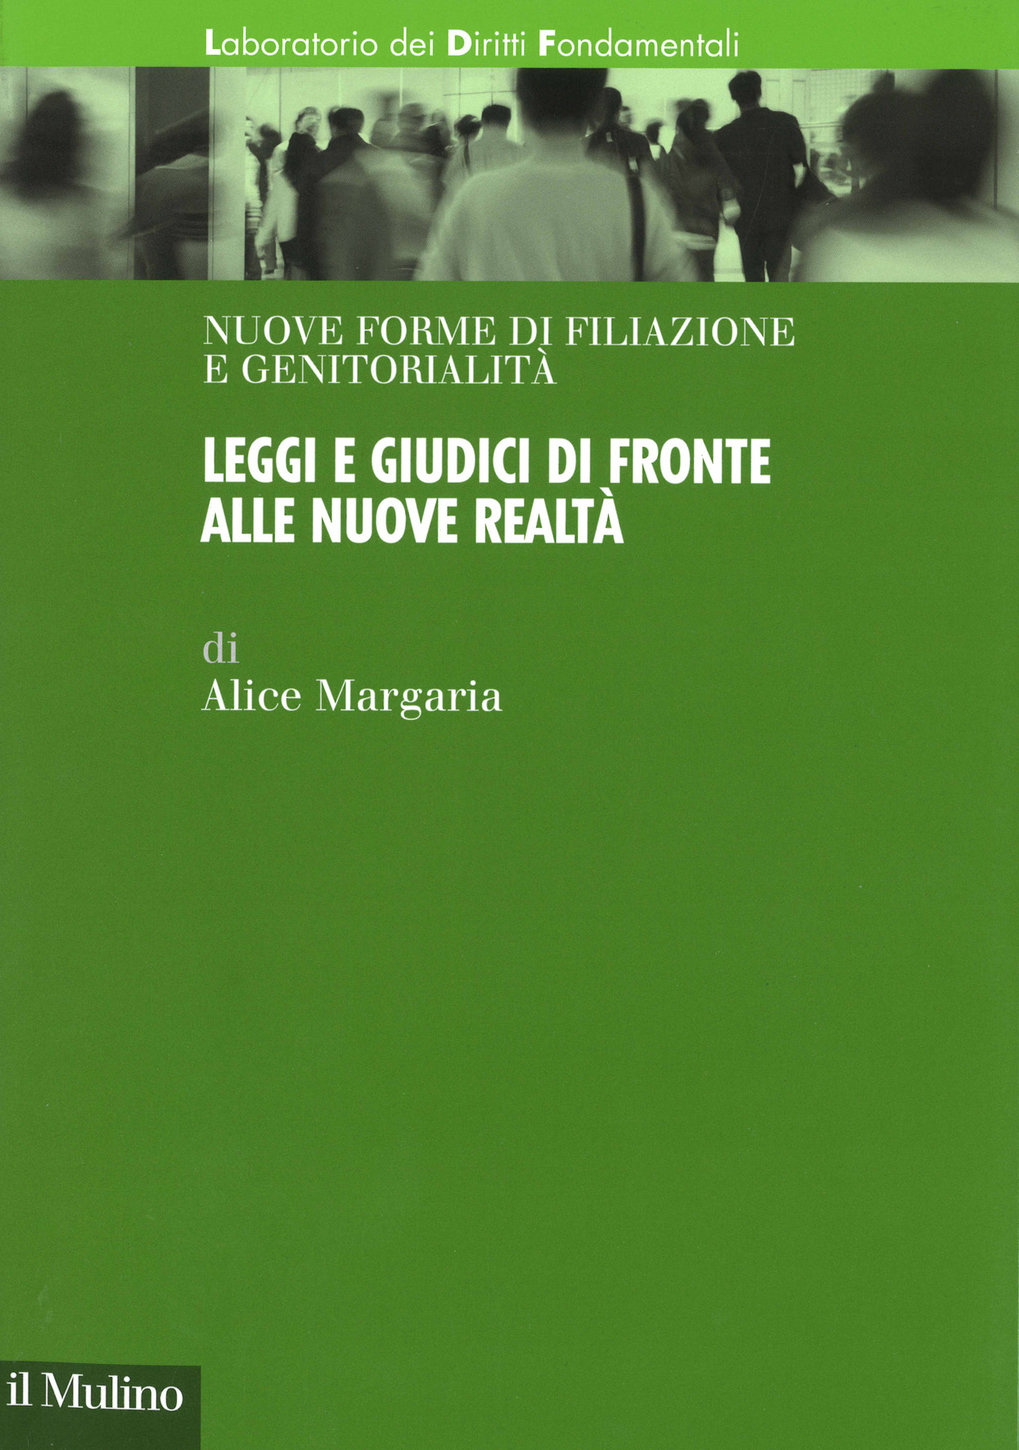 <strong>Author<br /></strong>Alice Margaria<br /> <p><strong>Publisher<br /></strong>Bologna: Società Editrice Il Mulino</p> <strong>Year of Publication</strong><br />2018 <br /><br /><strong>ISBN</strong><br />978-88-15-27797-8<br /><br />